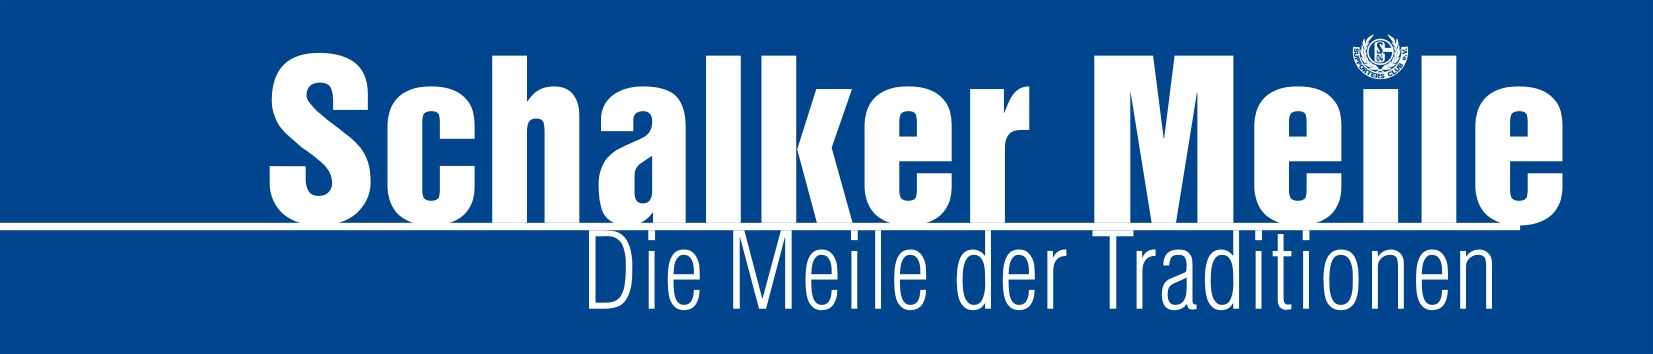 Schalker Meile